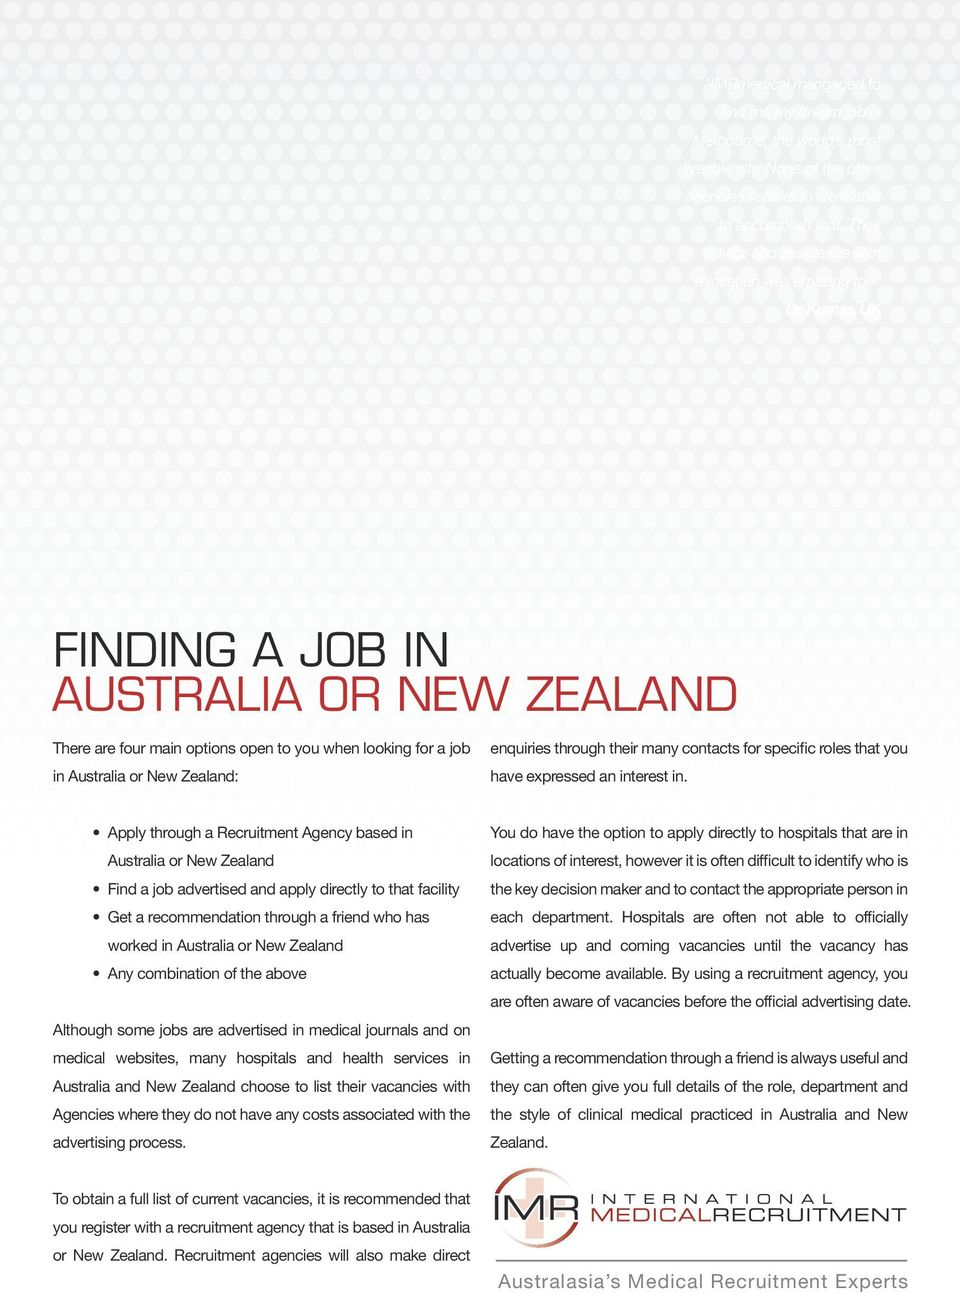 Zealand: enquiries through their many contacts for specific roles that you have expressed an interest in.